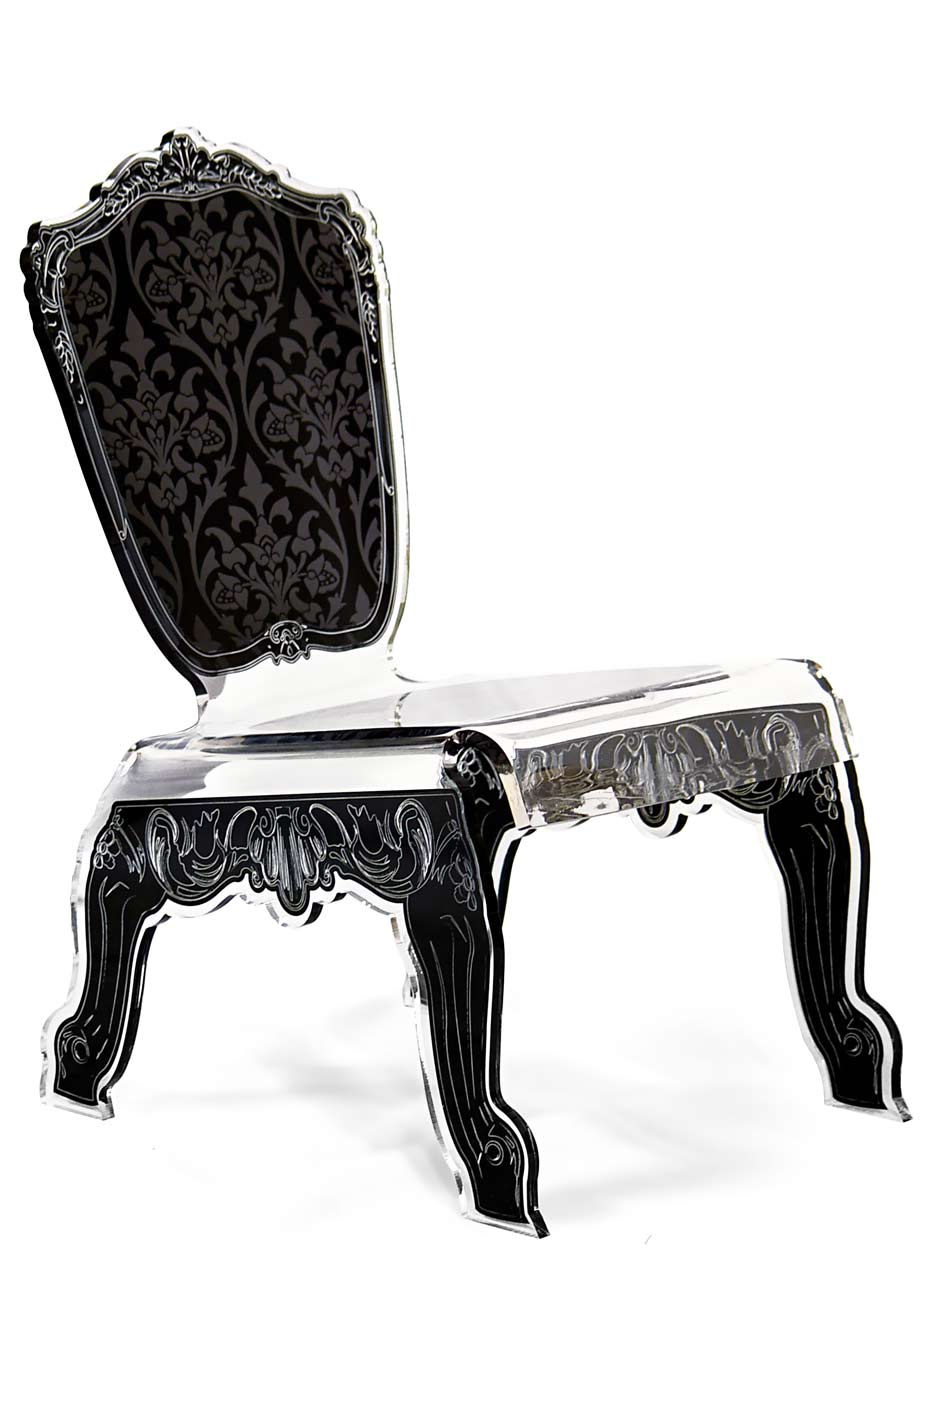 chaise design plexi elegant chaise plexiglass unique chaise chaise design plexiglass beau. Black Bedroom Furniture Sets. Home Design Ideas